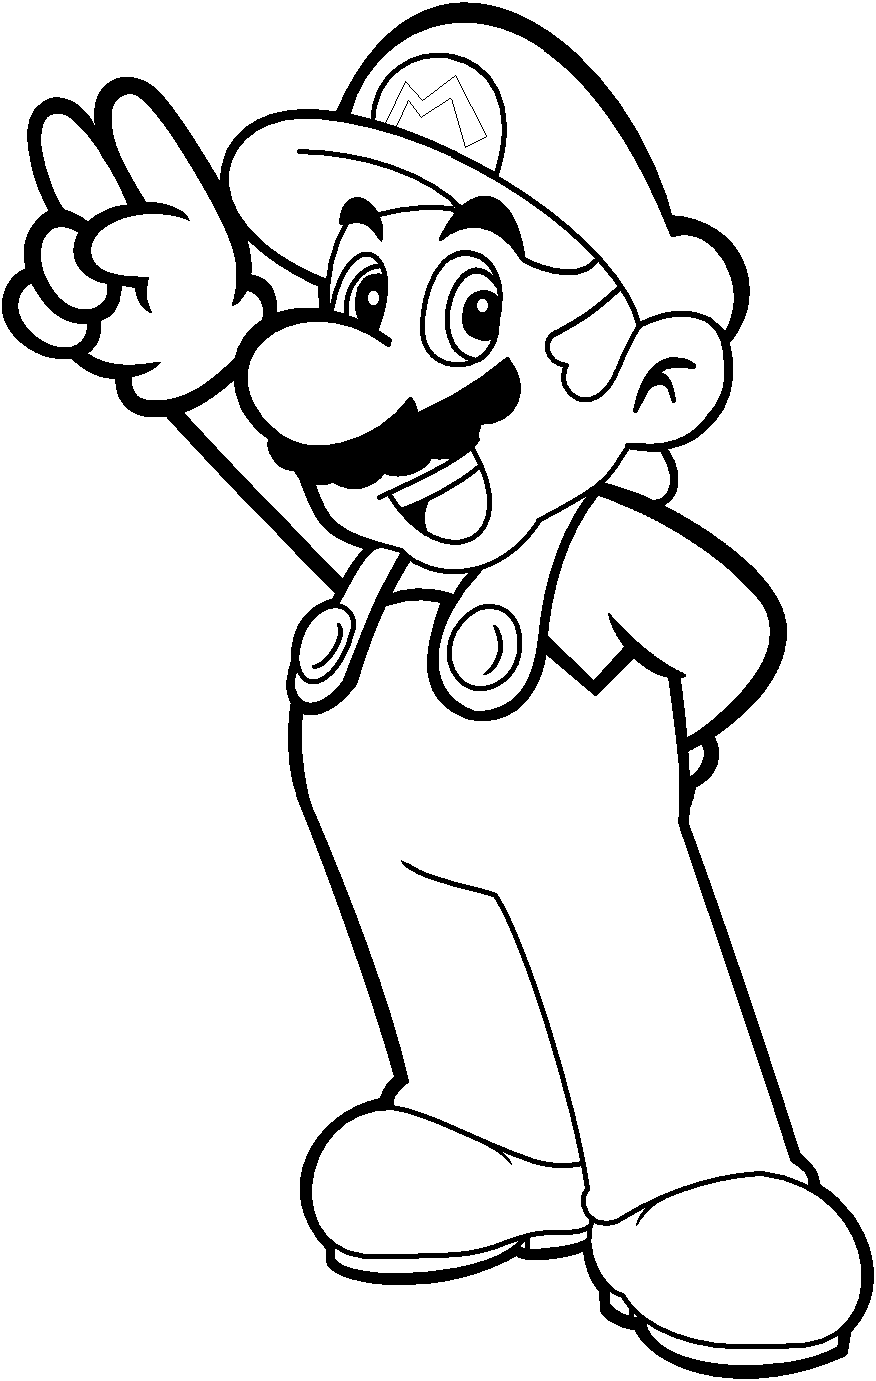 super mario bros coloring mario coloring pages themes best apps for kids super bros coloring mario